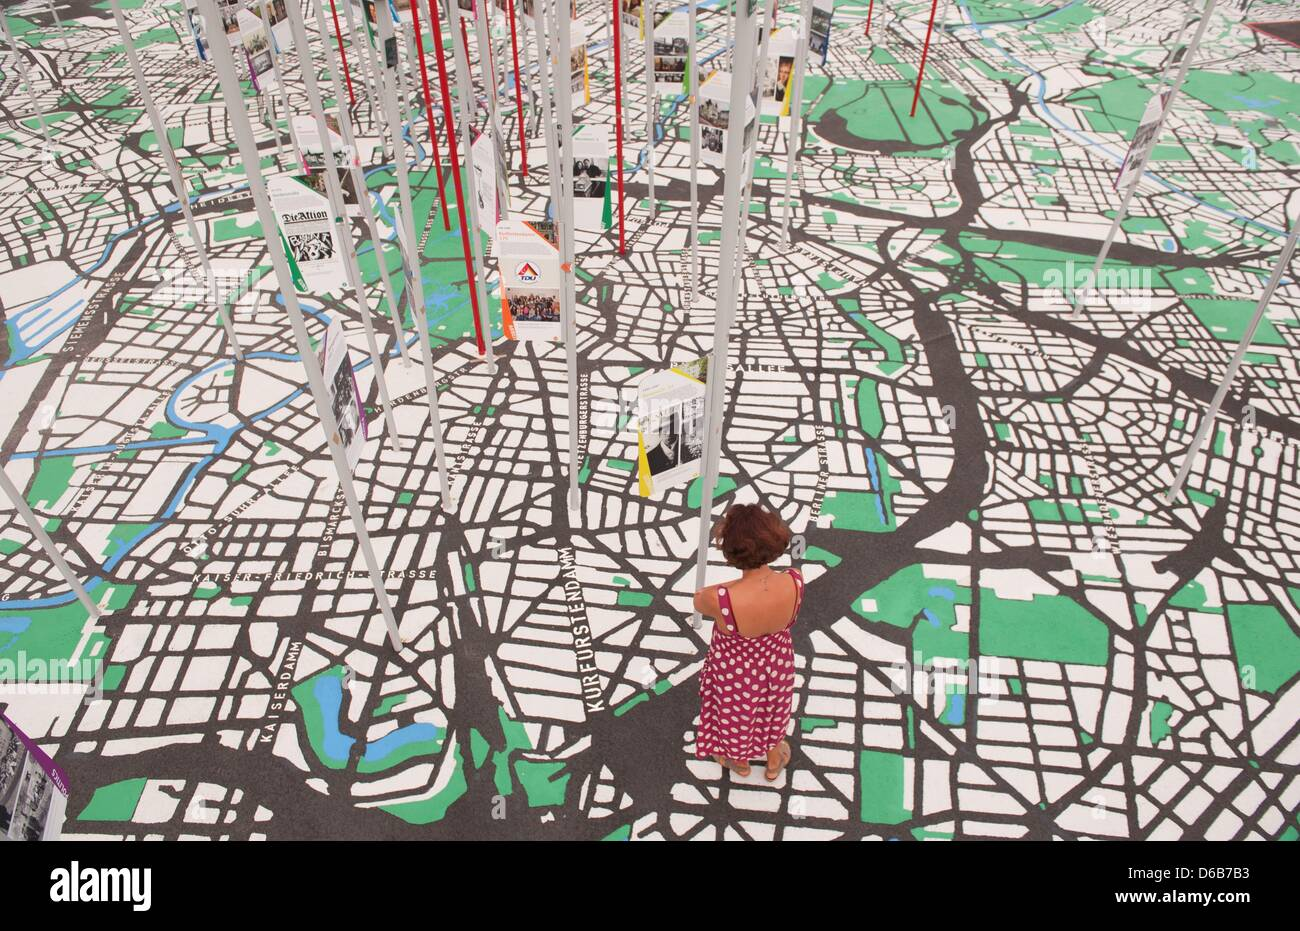 Exhibition Stand Location Map : A visitor stands among giant on an over sized map of